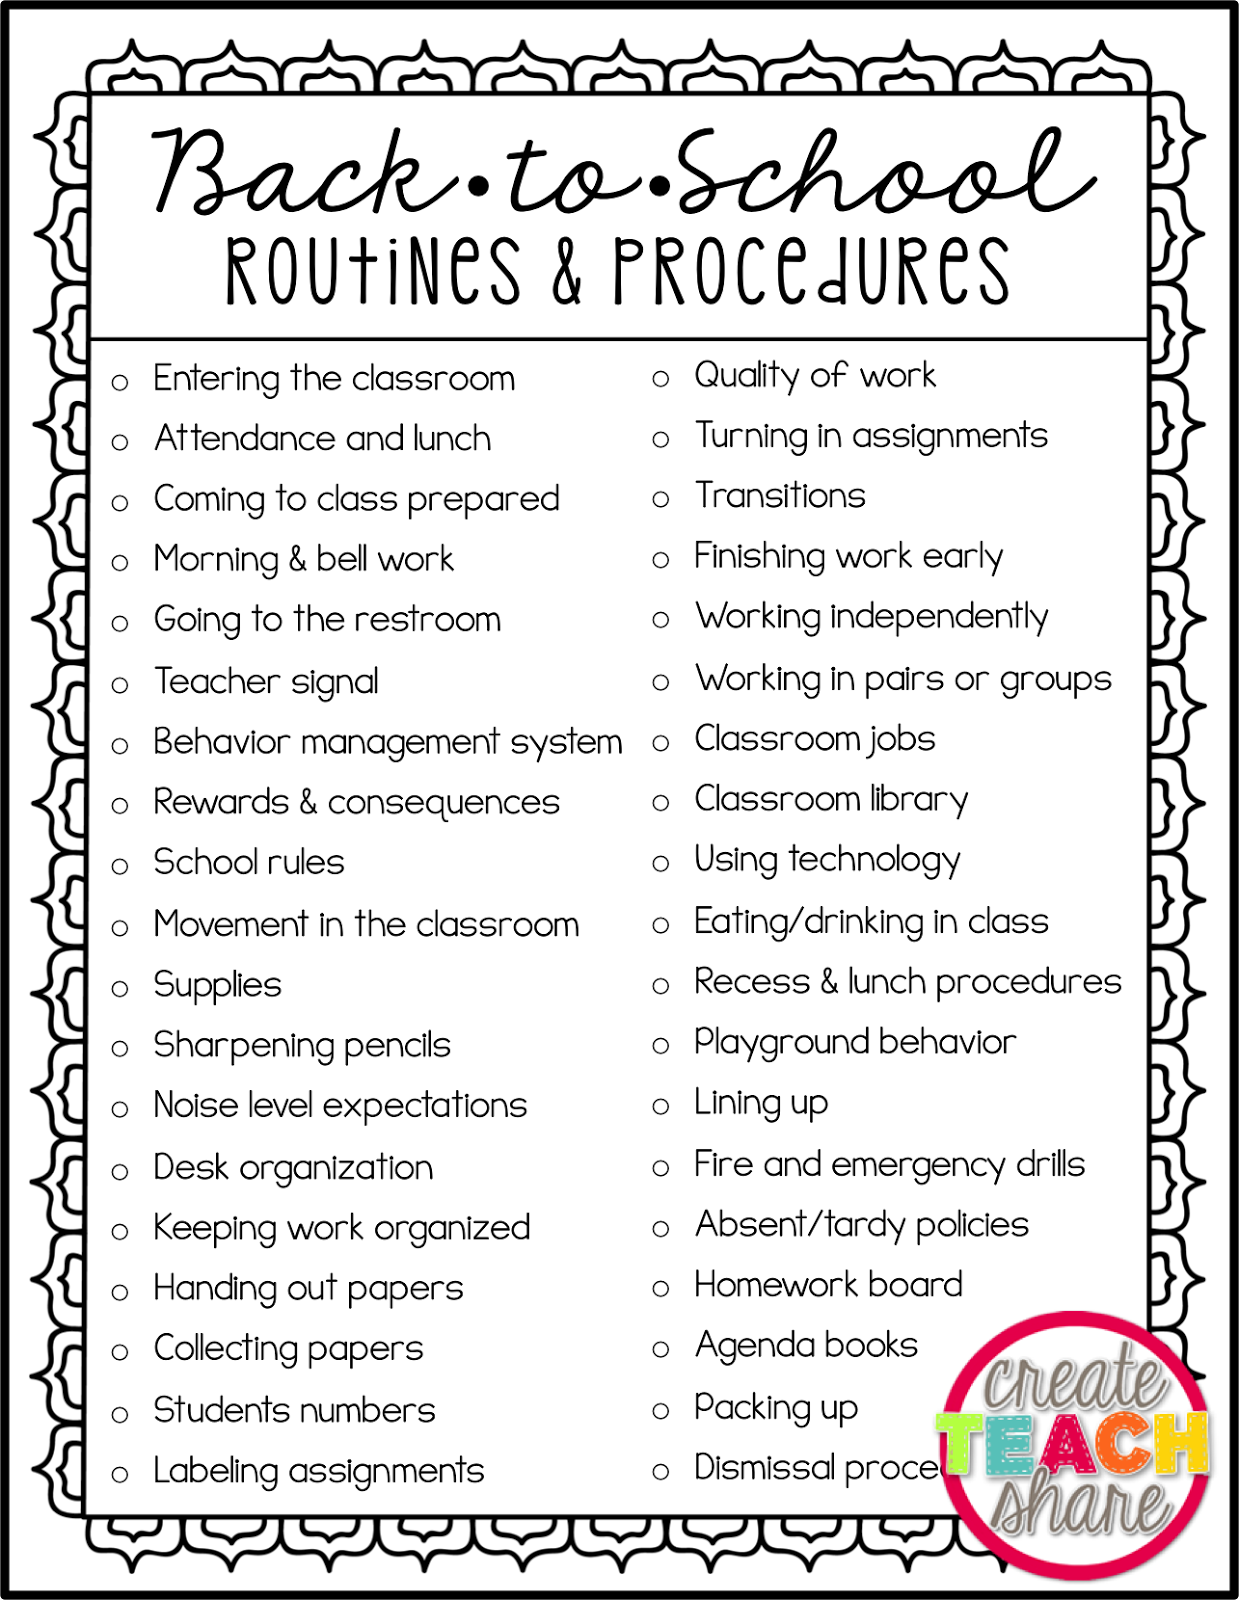 Elementary Classroom Procedures : Upper elementary snapshots back to school routines